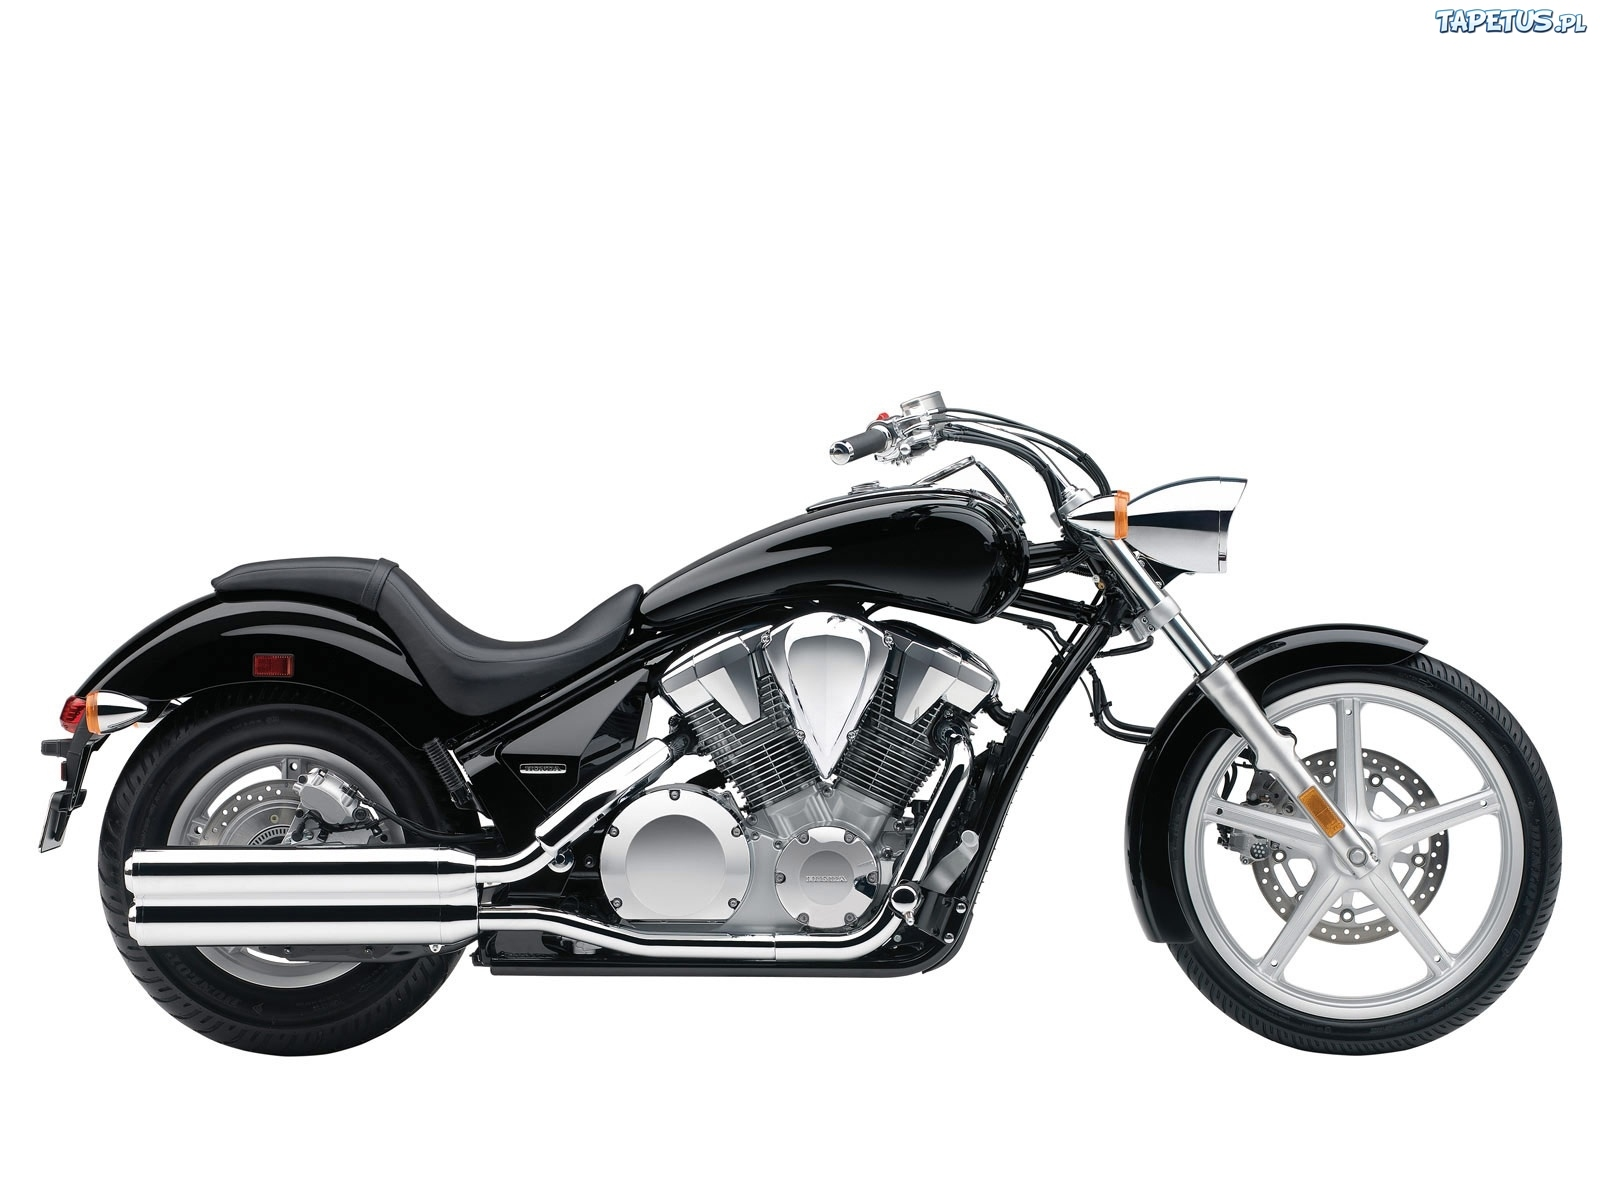 RIVCO Products - Motorcycle Parts & Accessories